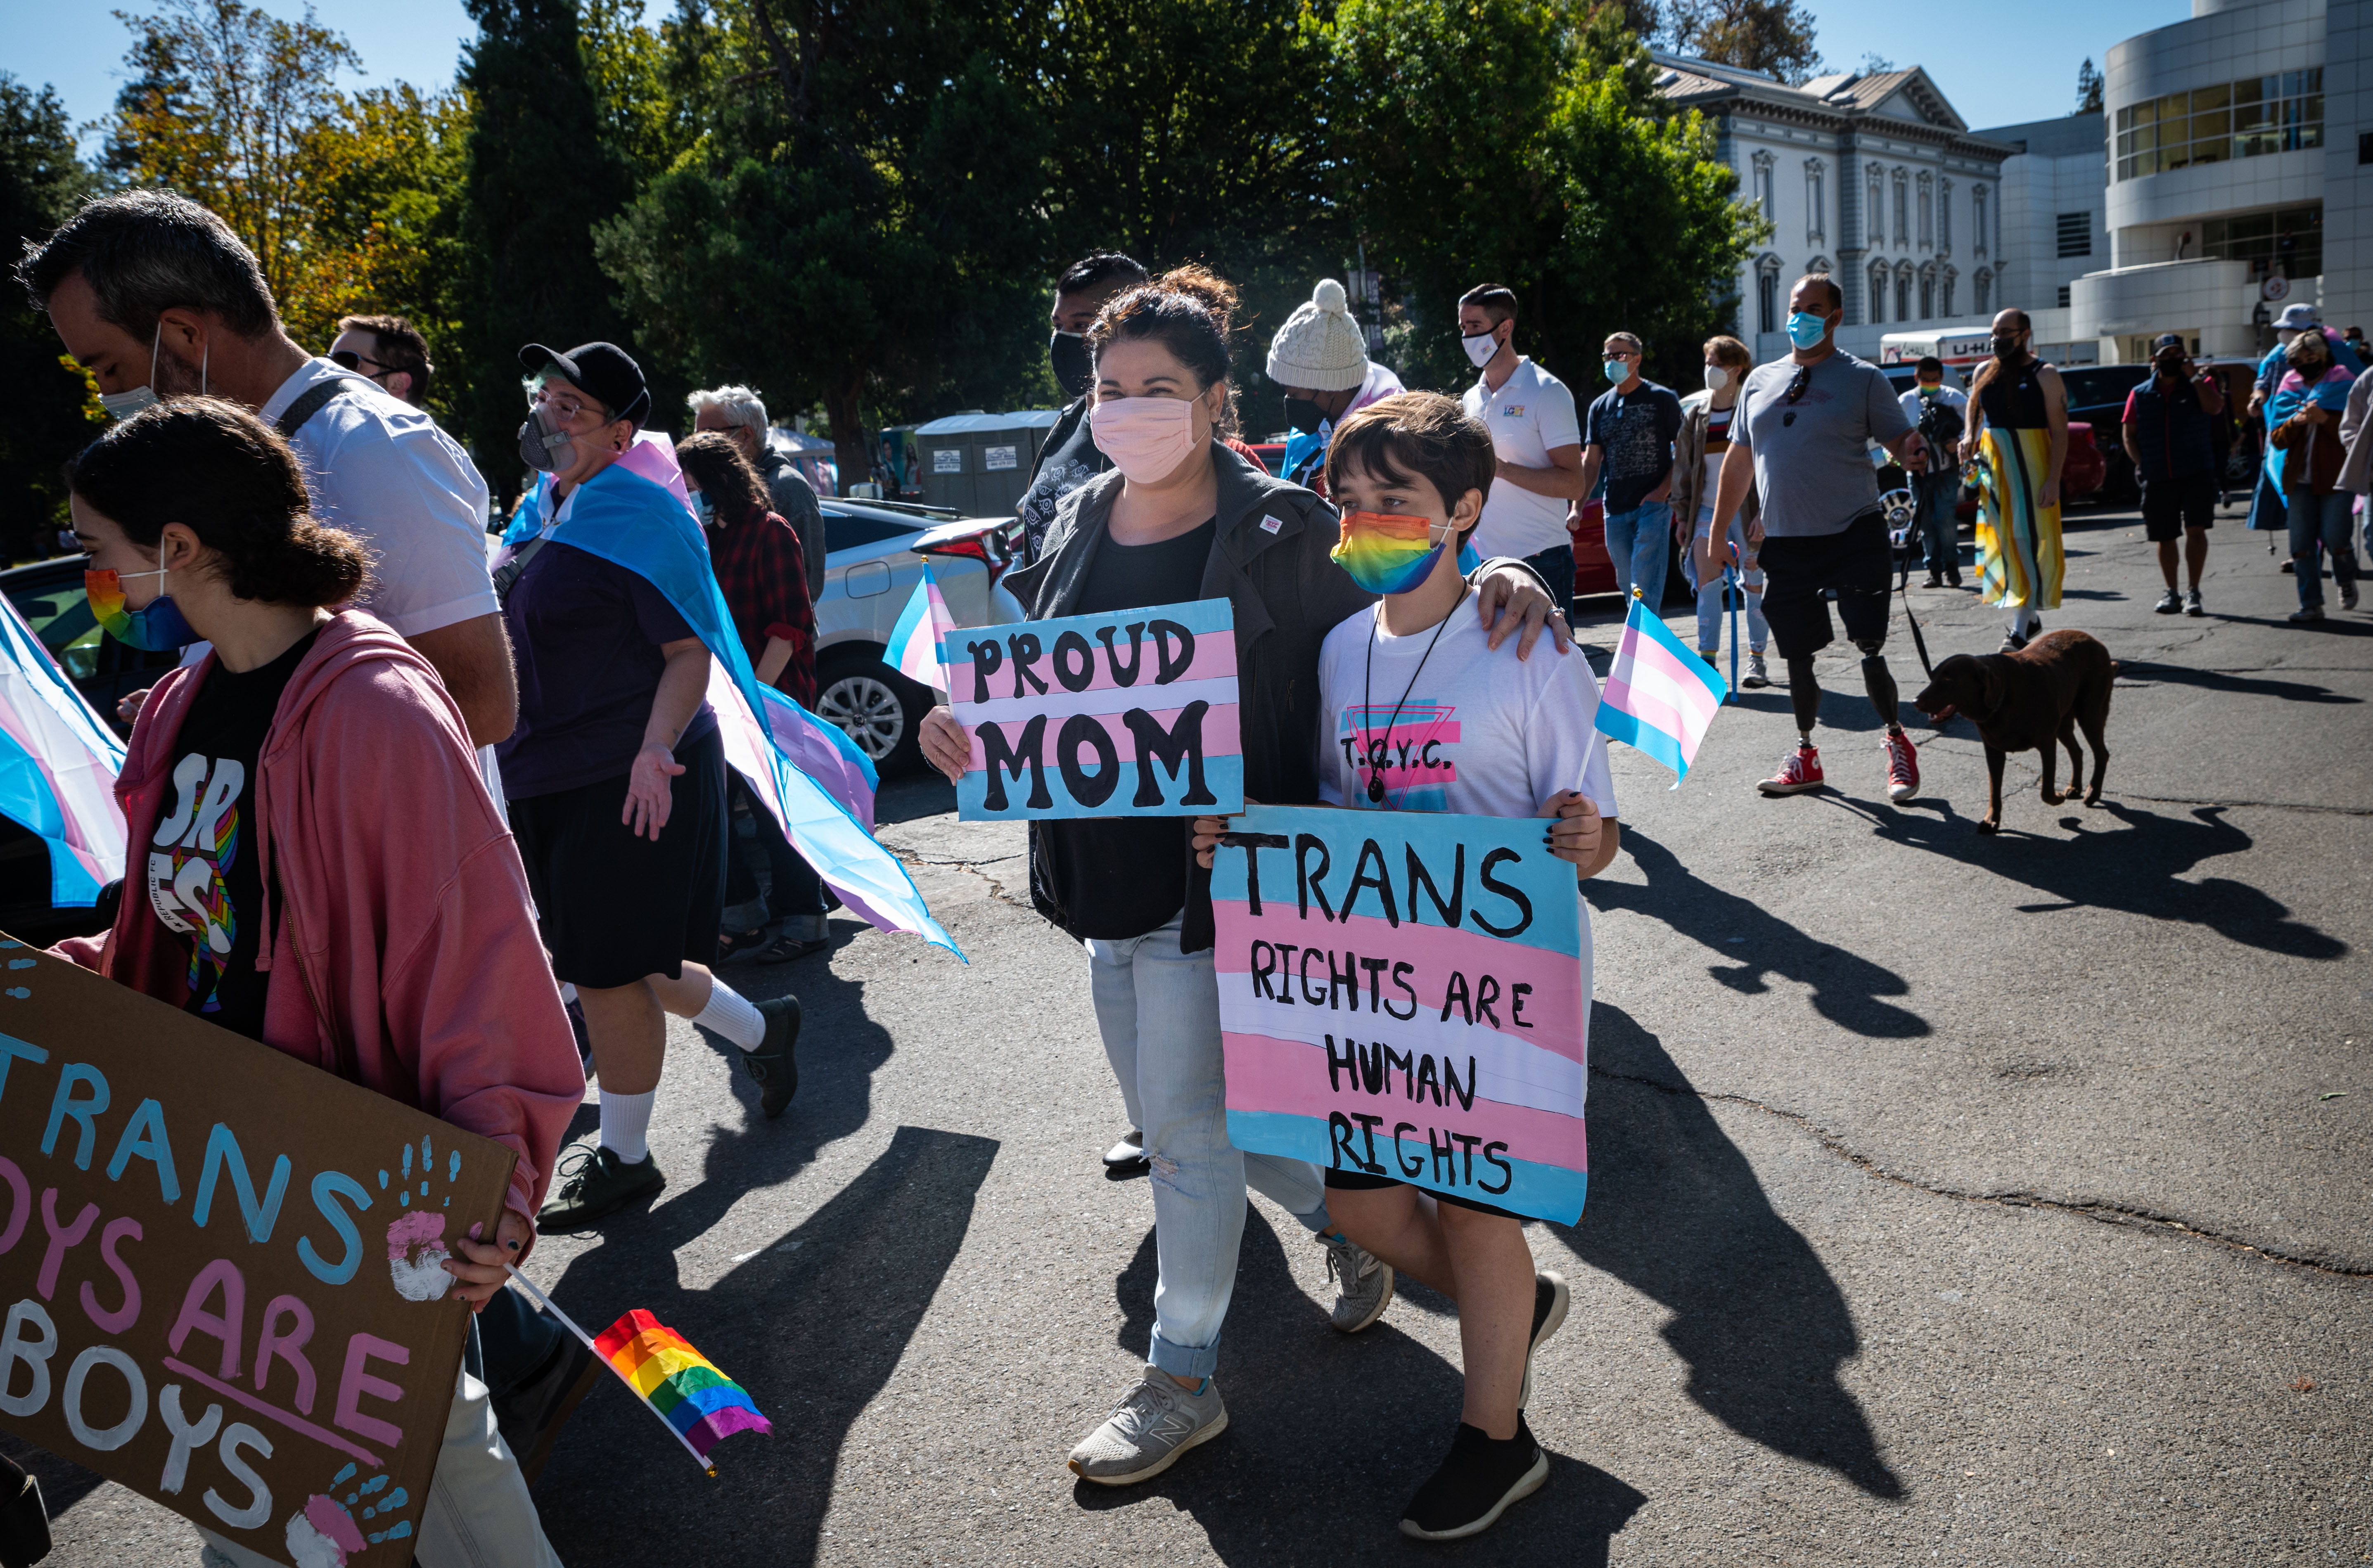 National Trans Visibility Day